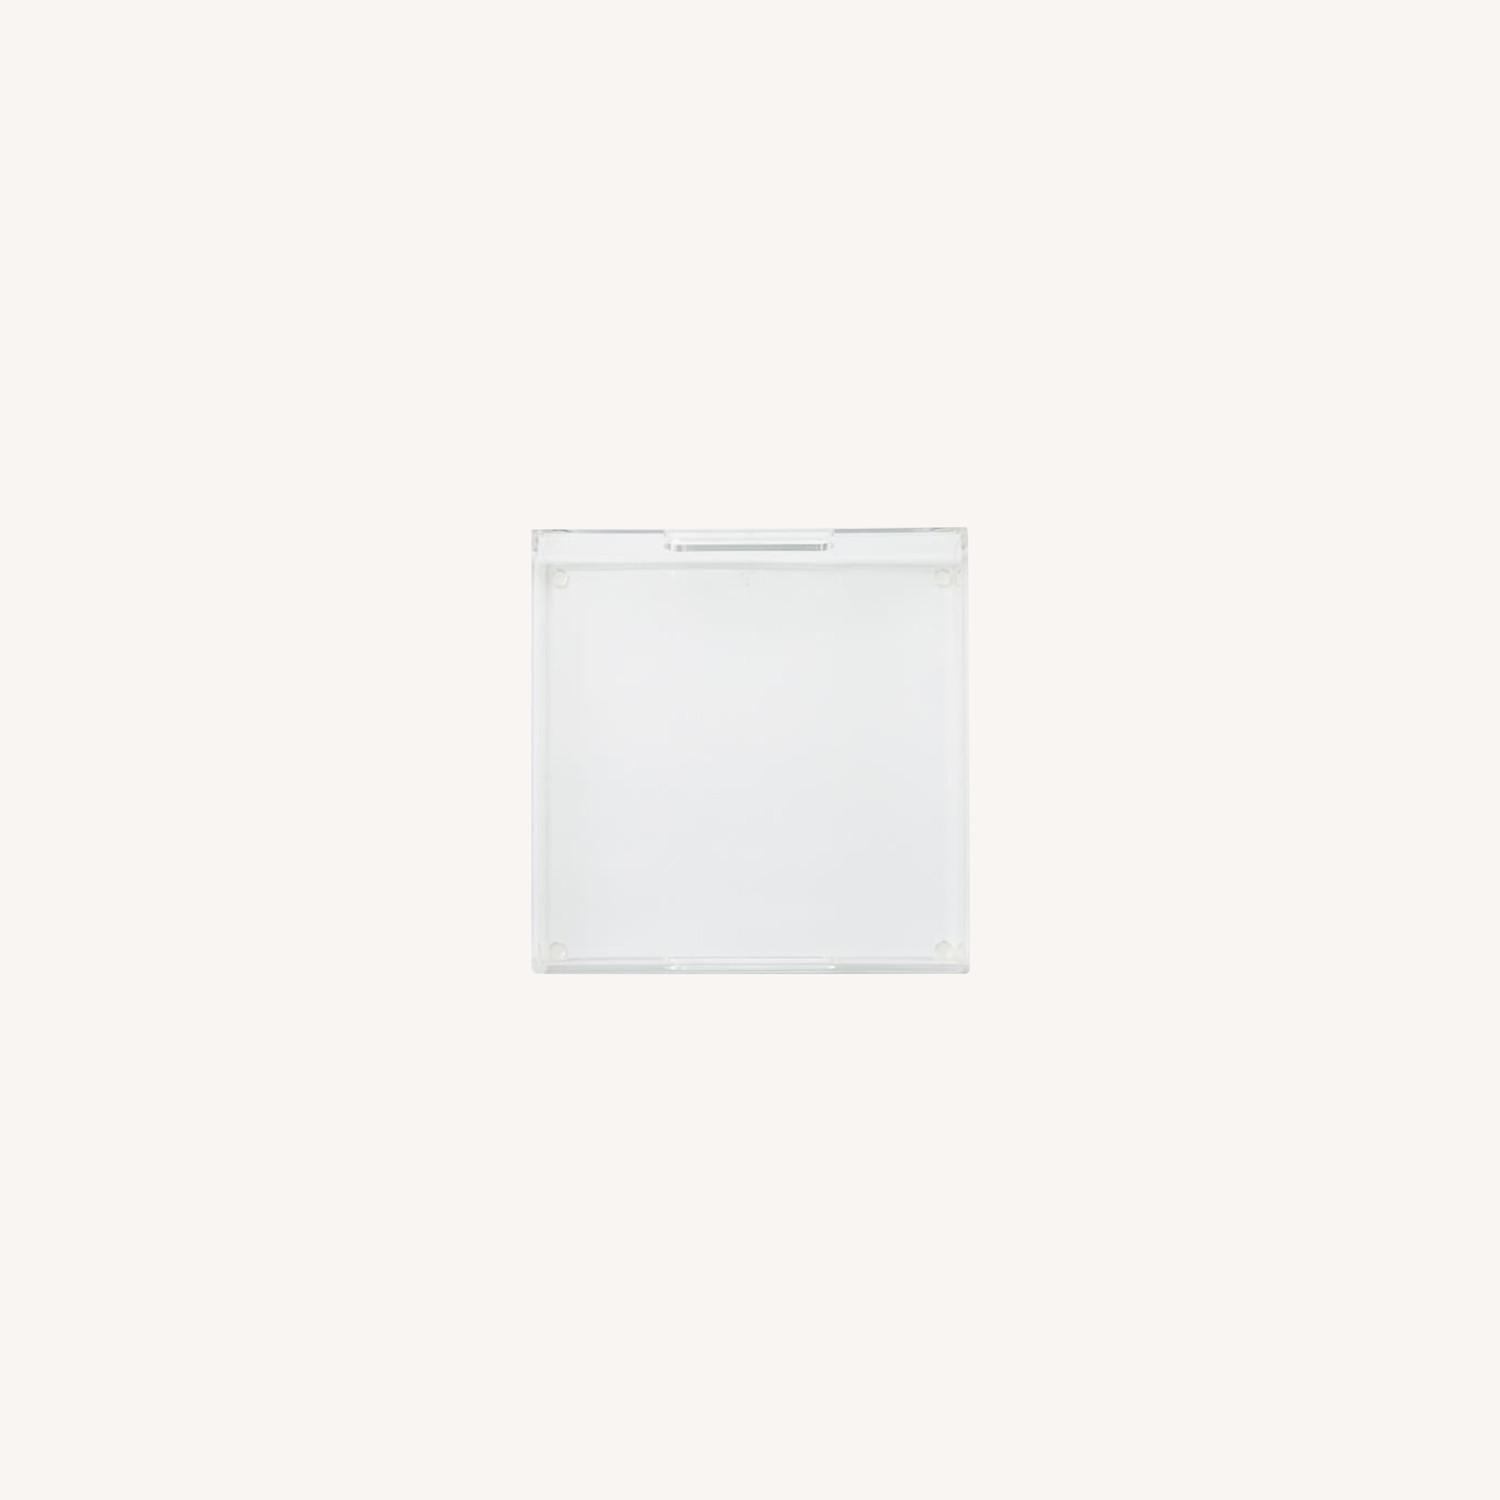 West Elm Clear Acrylic Square Tray - image-0